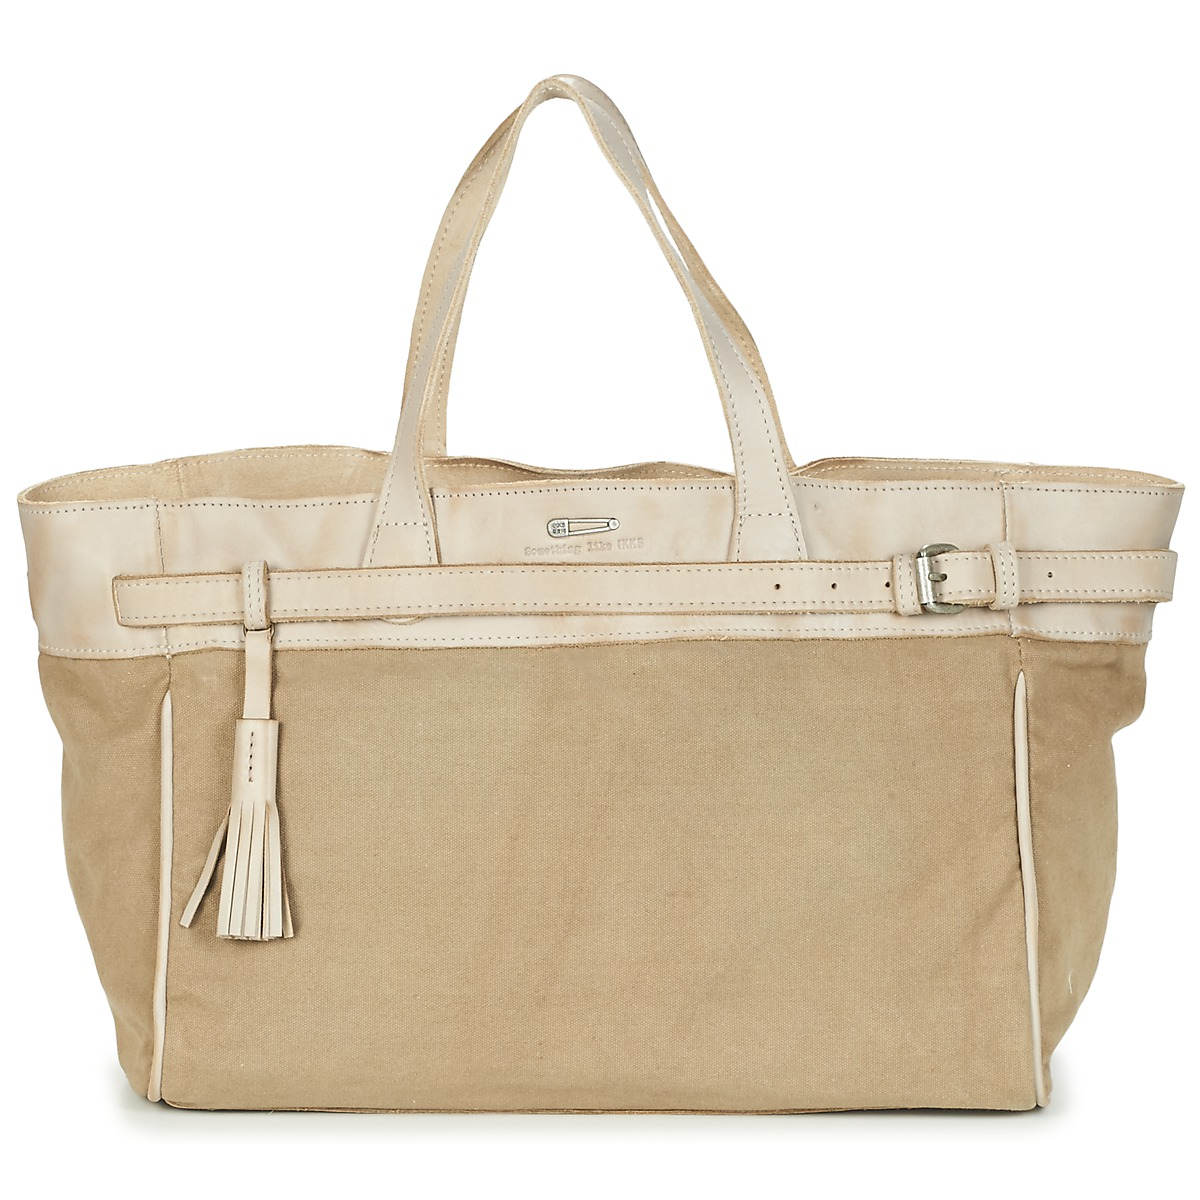 Cabas / Sac shopping Ikks THE SOLDIER Beige, Sacs Spartoo